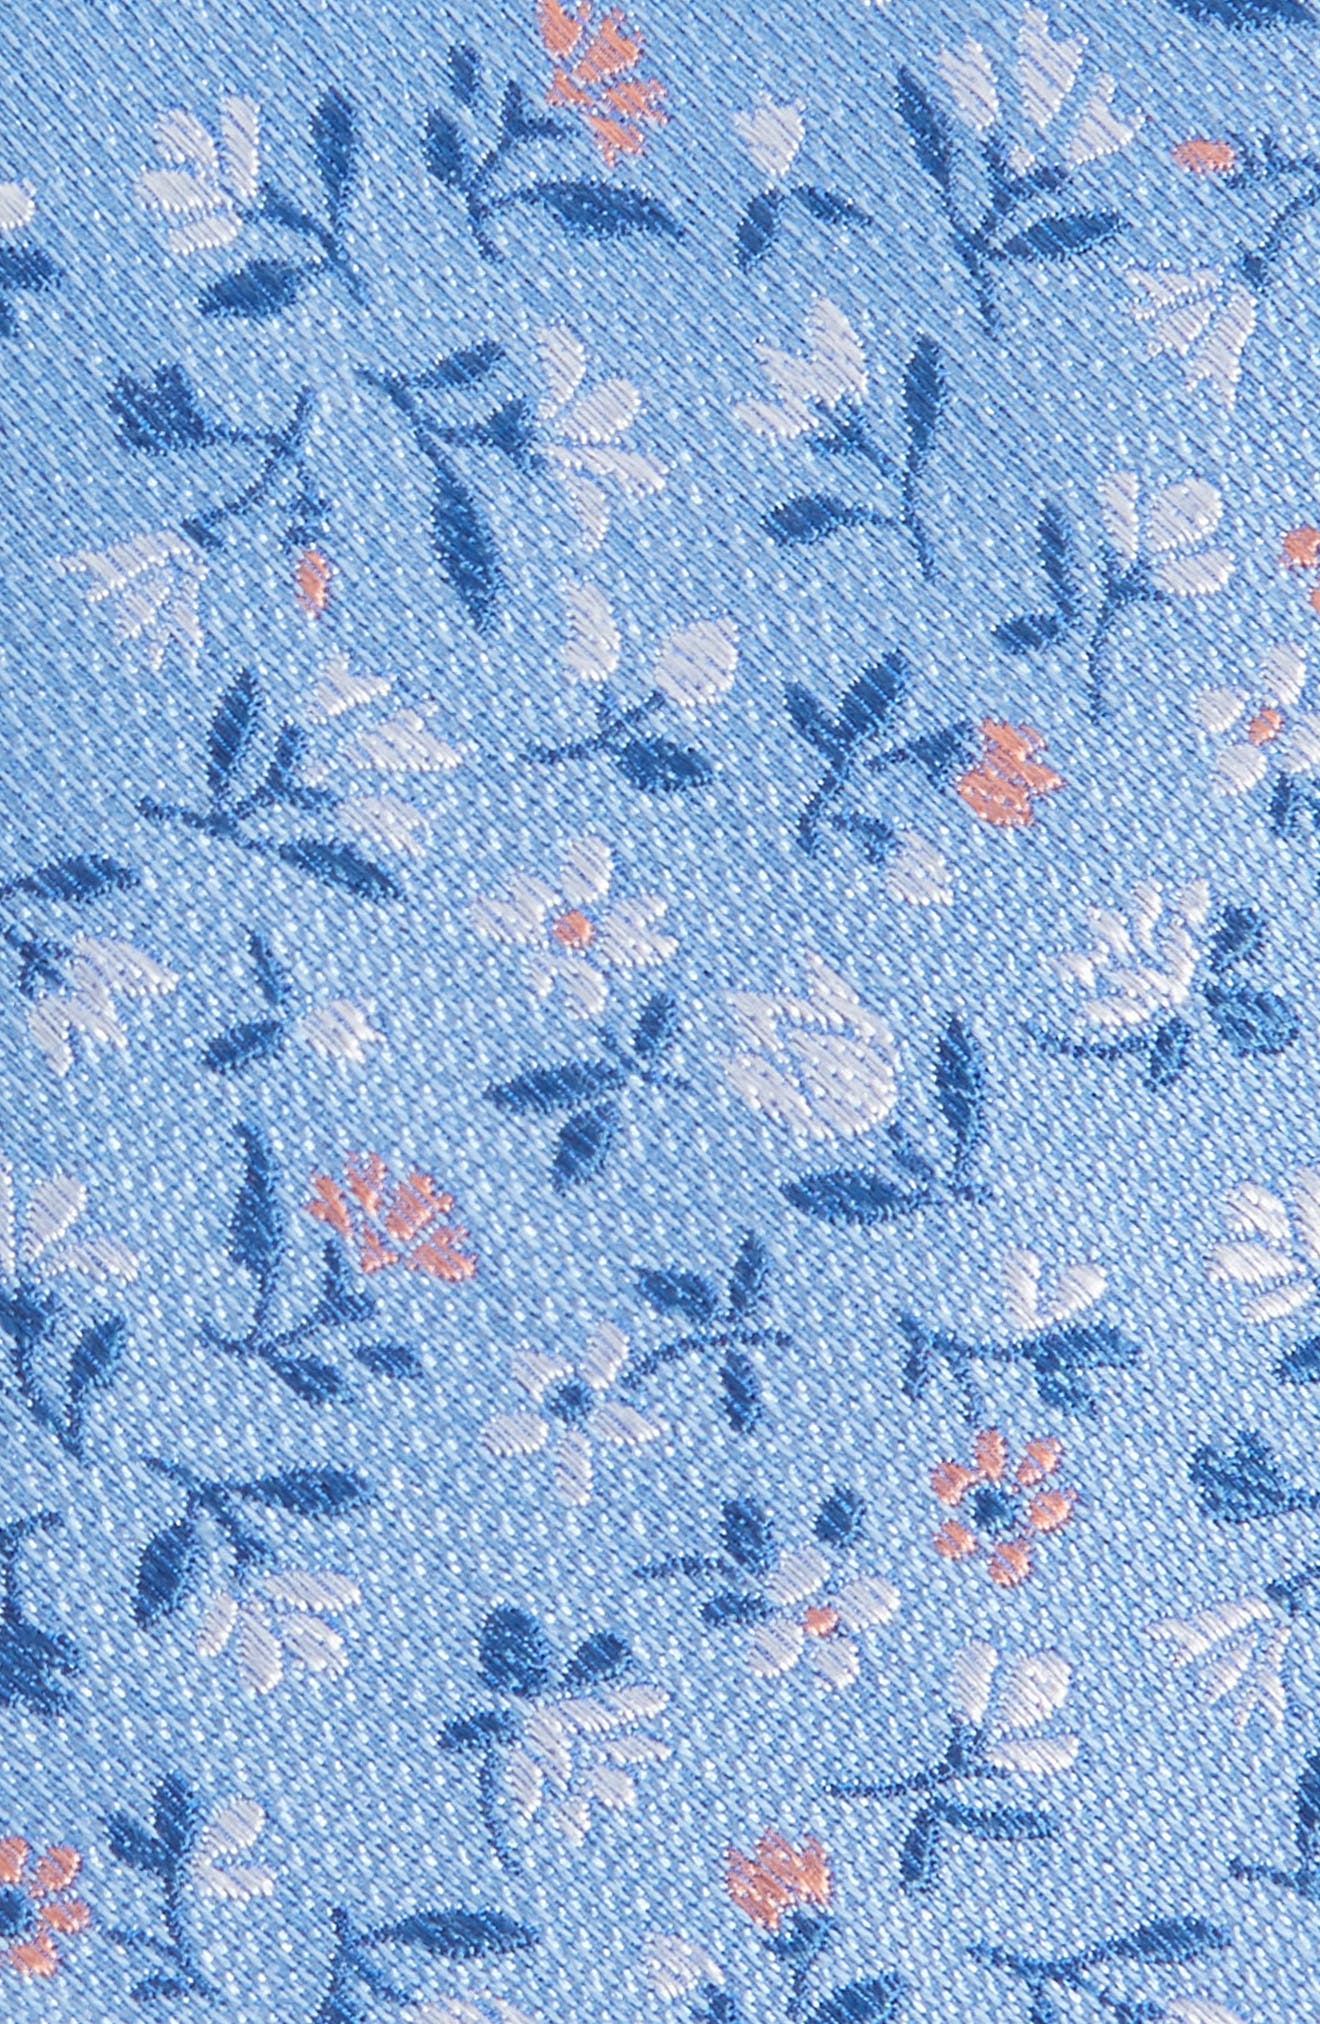 Flower Fields Silk & Cotton Tie,                             Alternate thumbnail 2, color,                             LIGHT BLUE